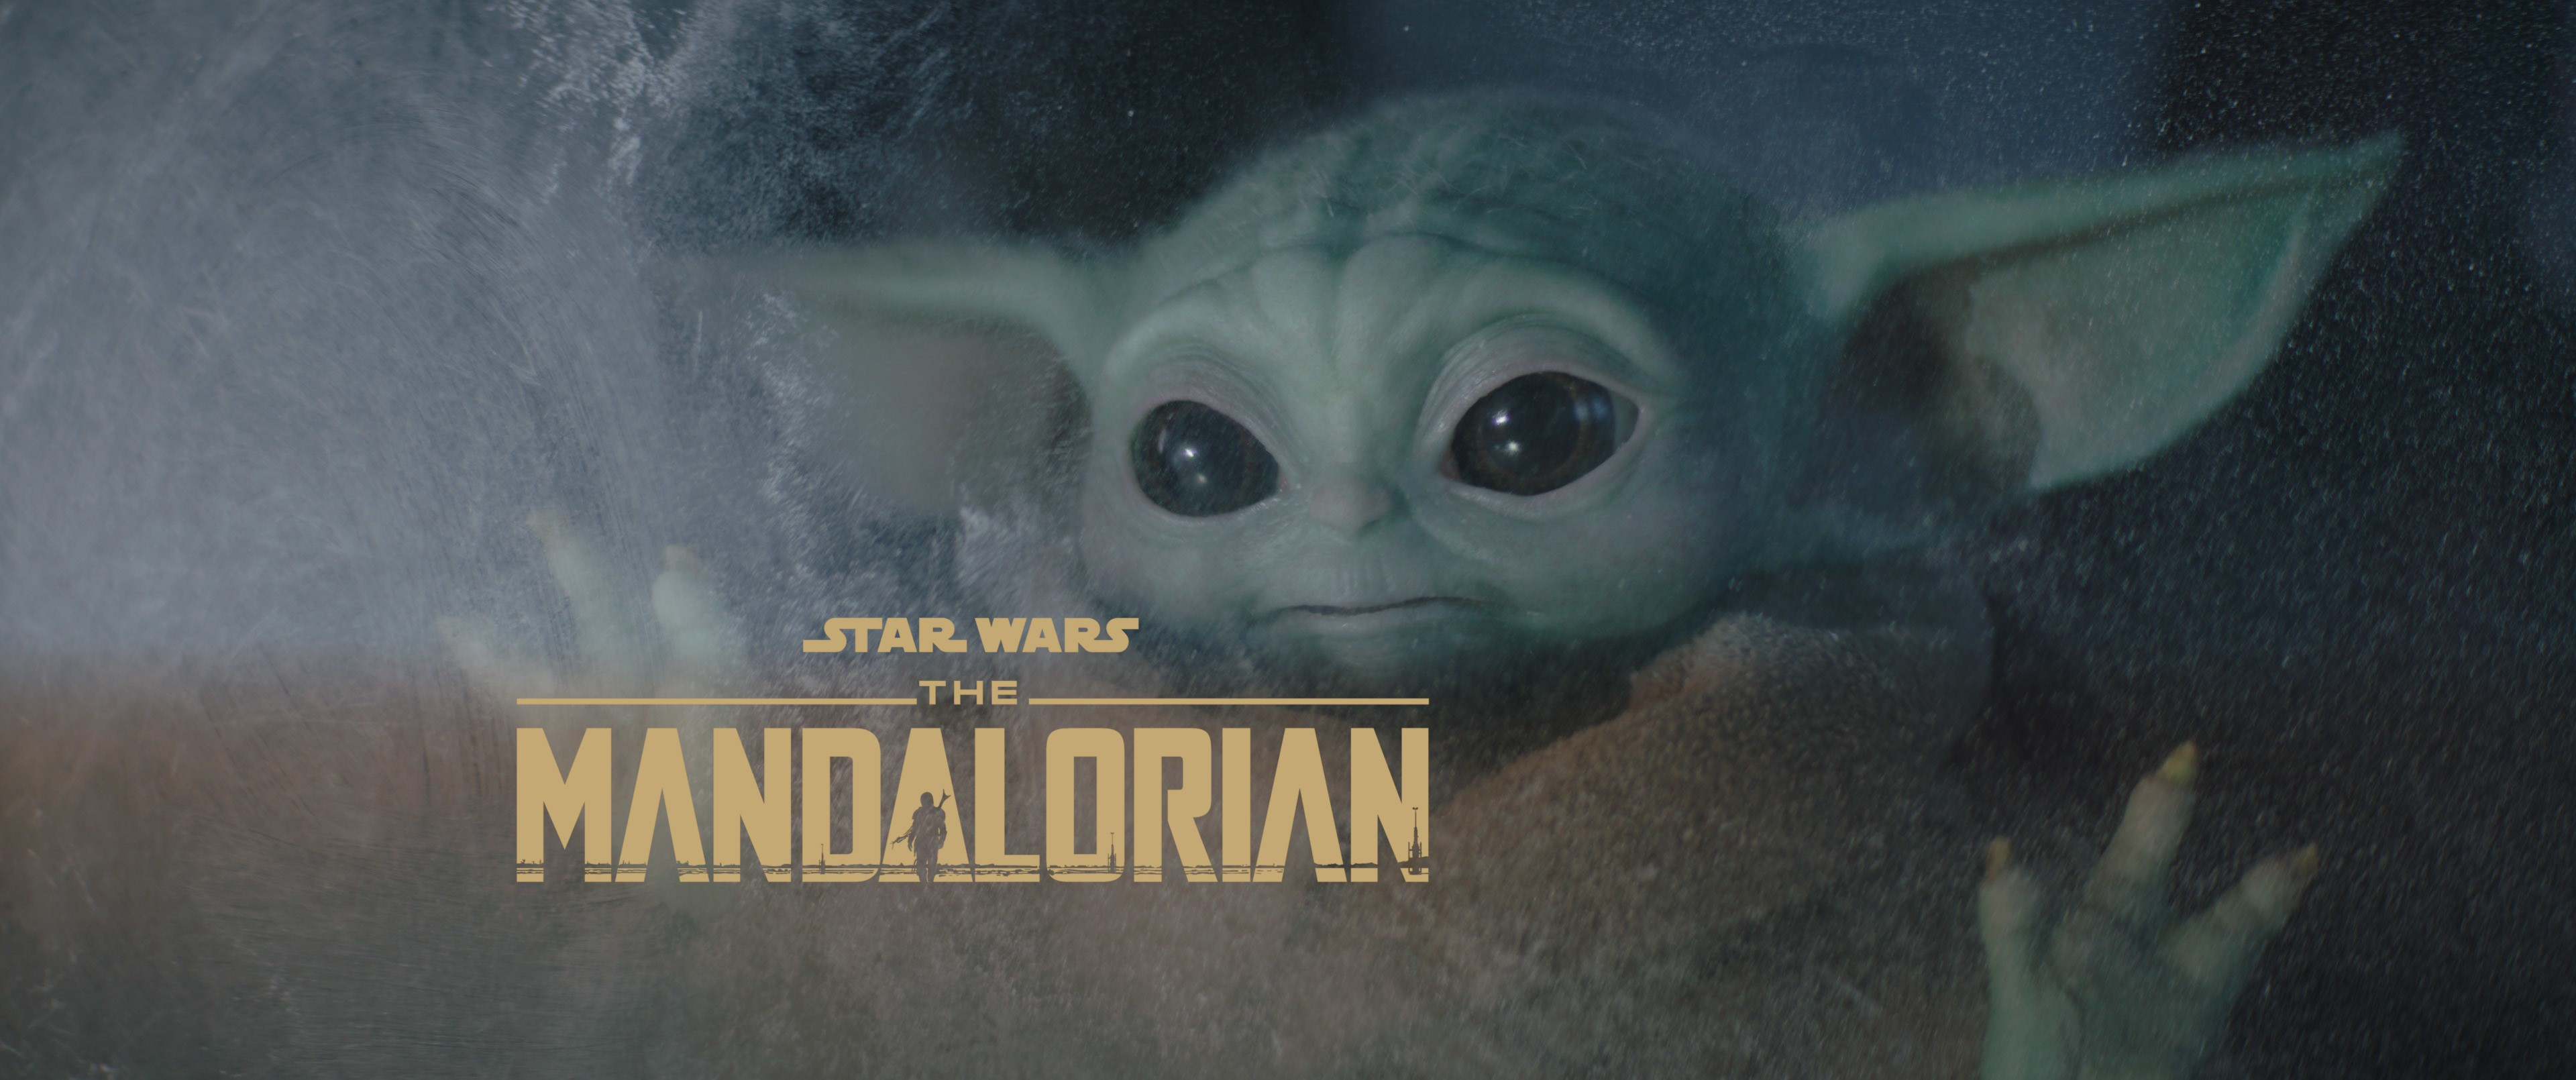 The_Mandalorian_Season2_Chapter10_The_Passenger_006